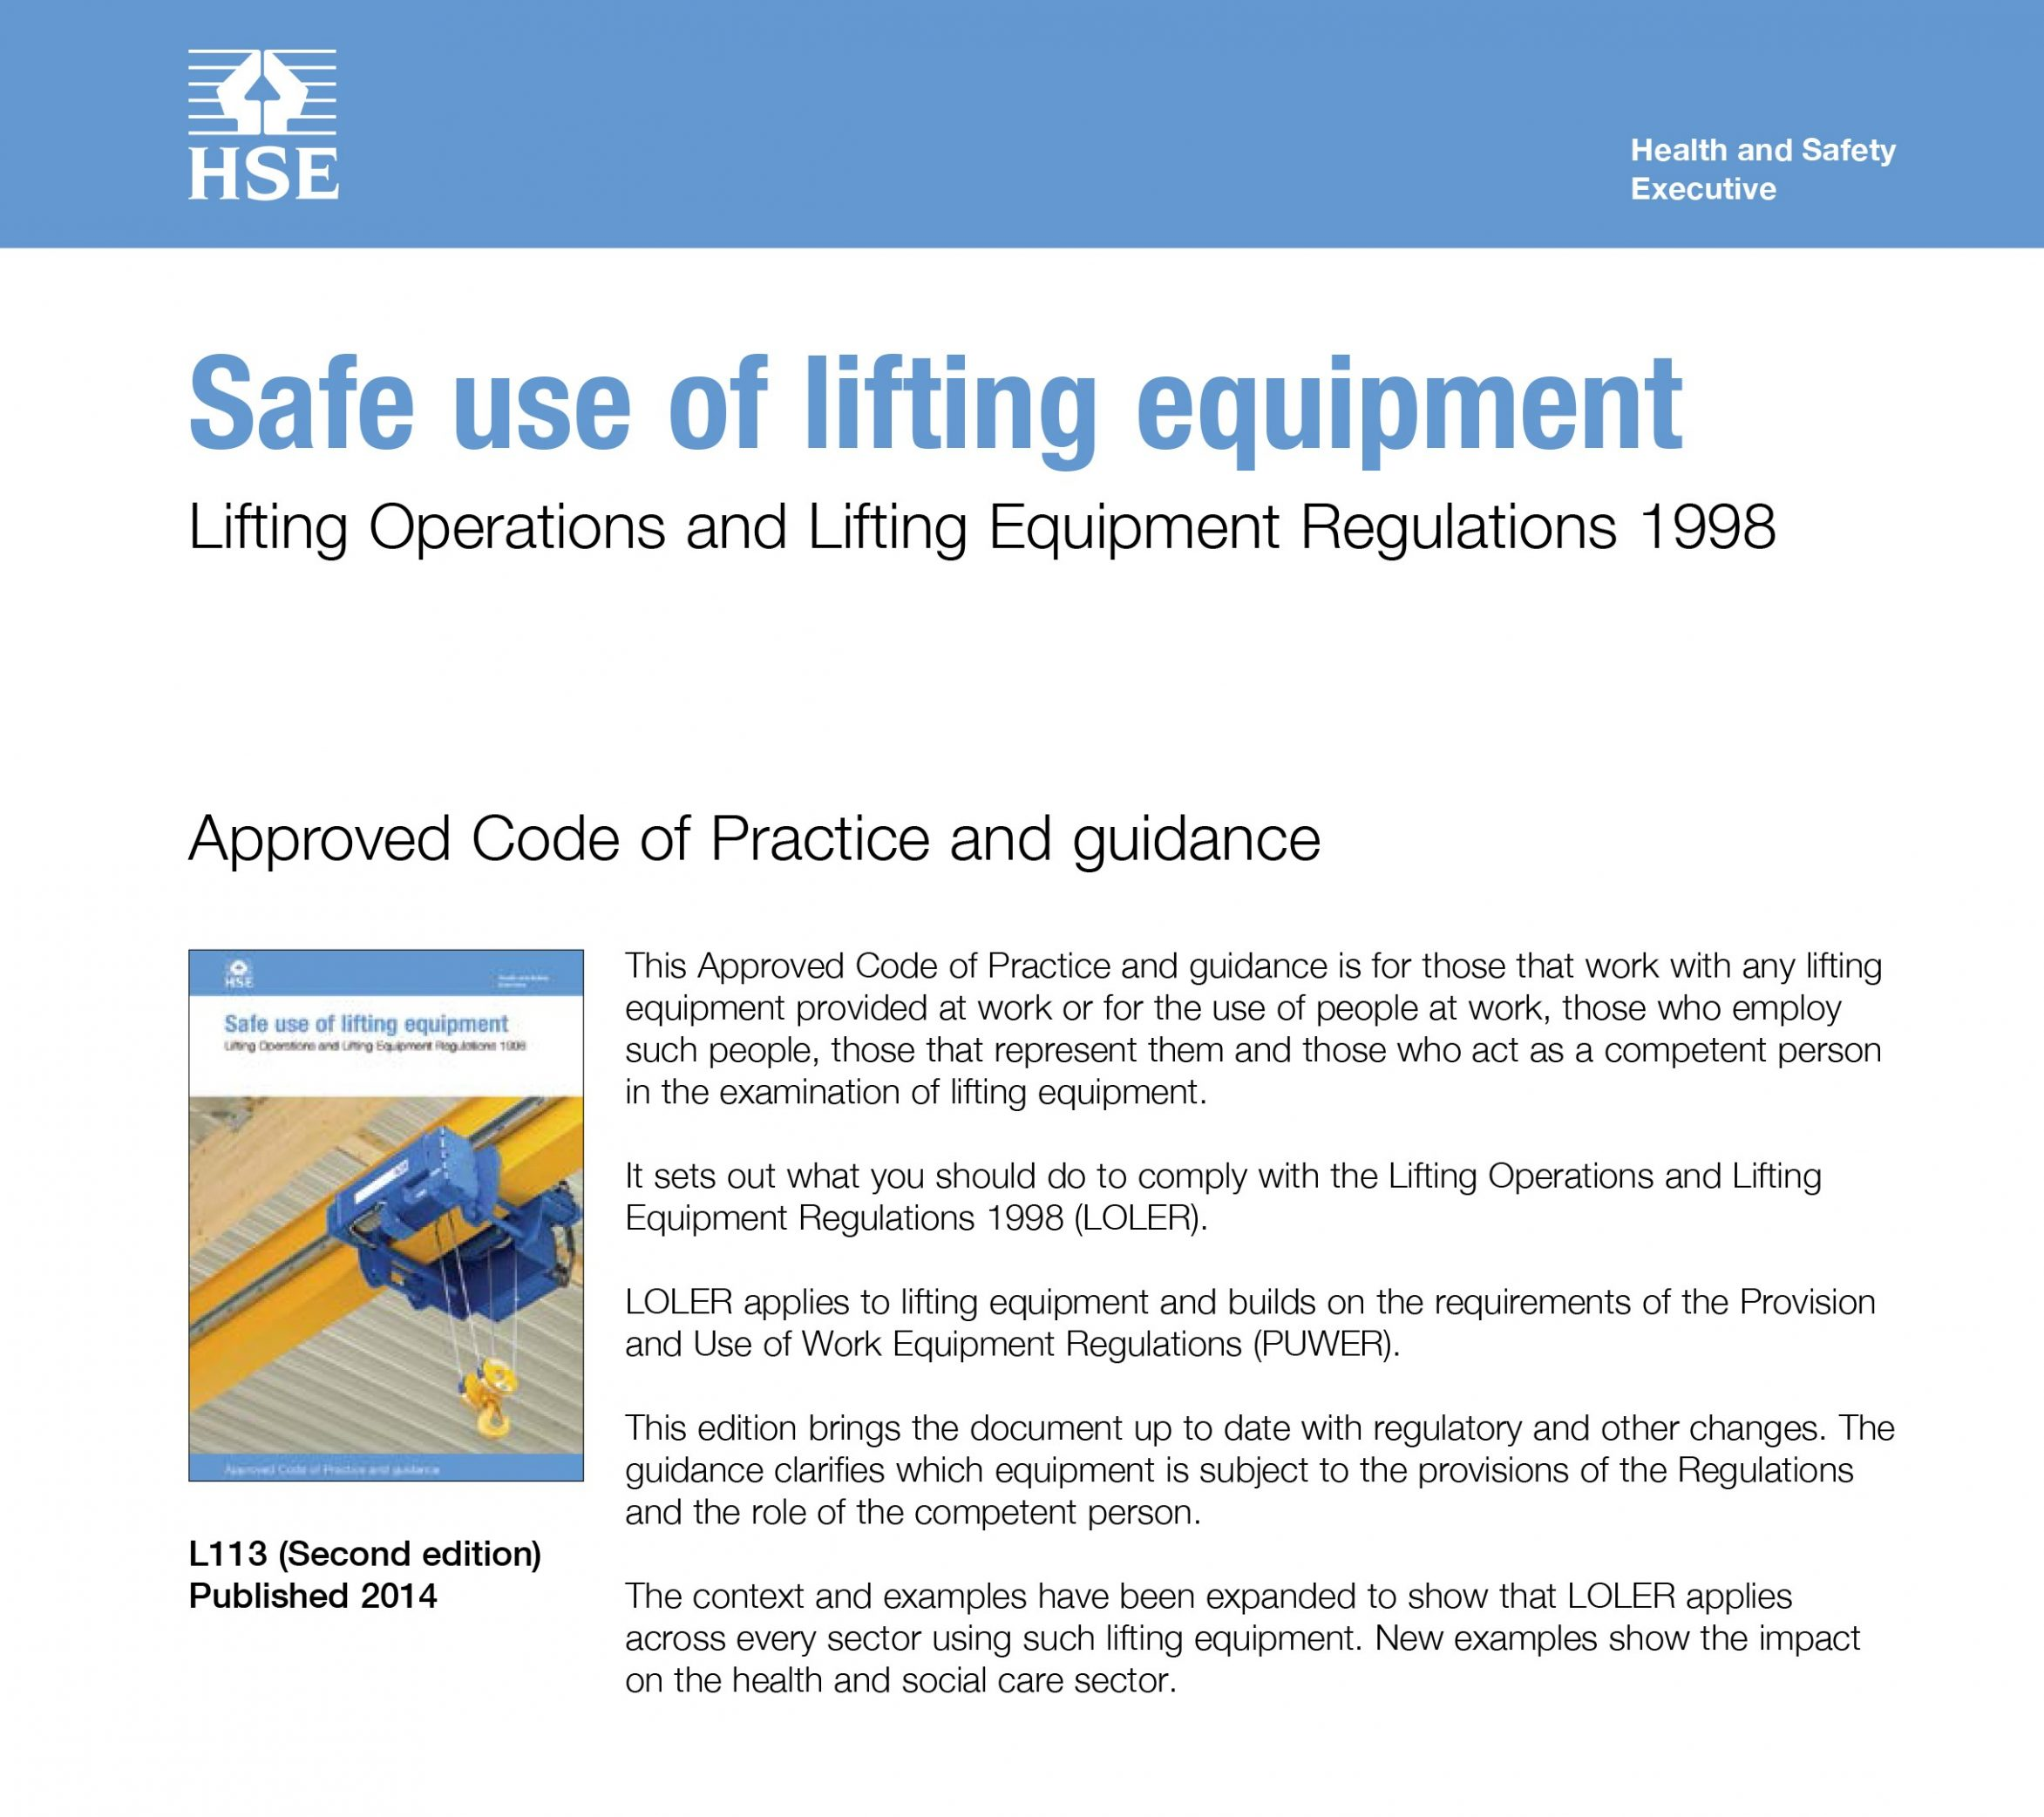 Approved Code of Practice and guidance on the Lifting Operations and Lifting Equipment Regulations (LOLER).